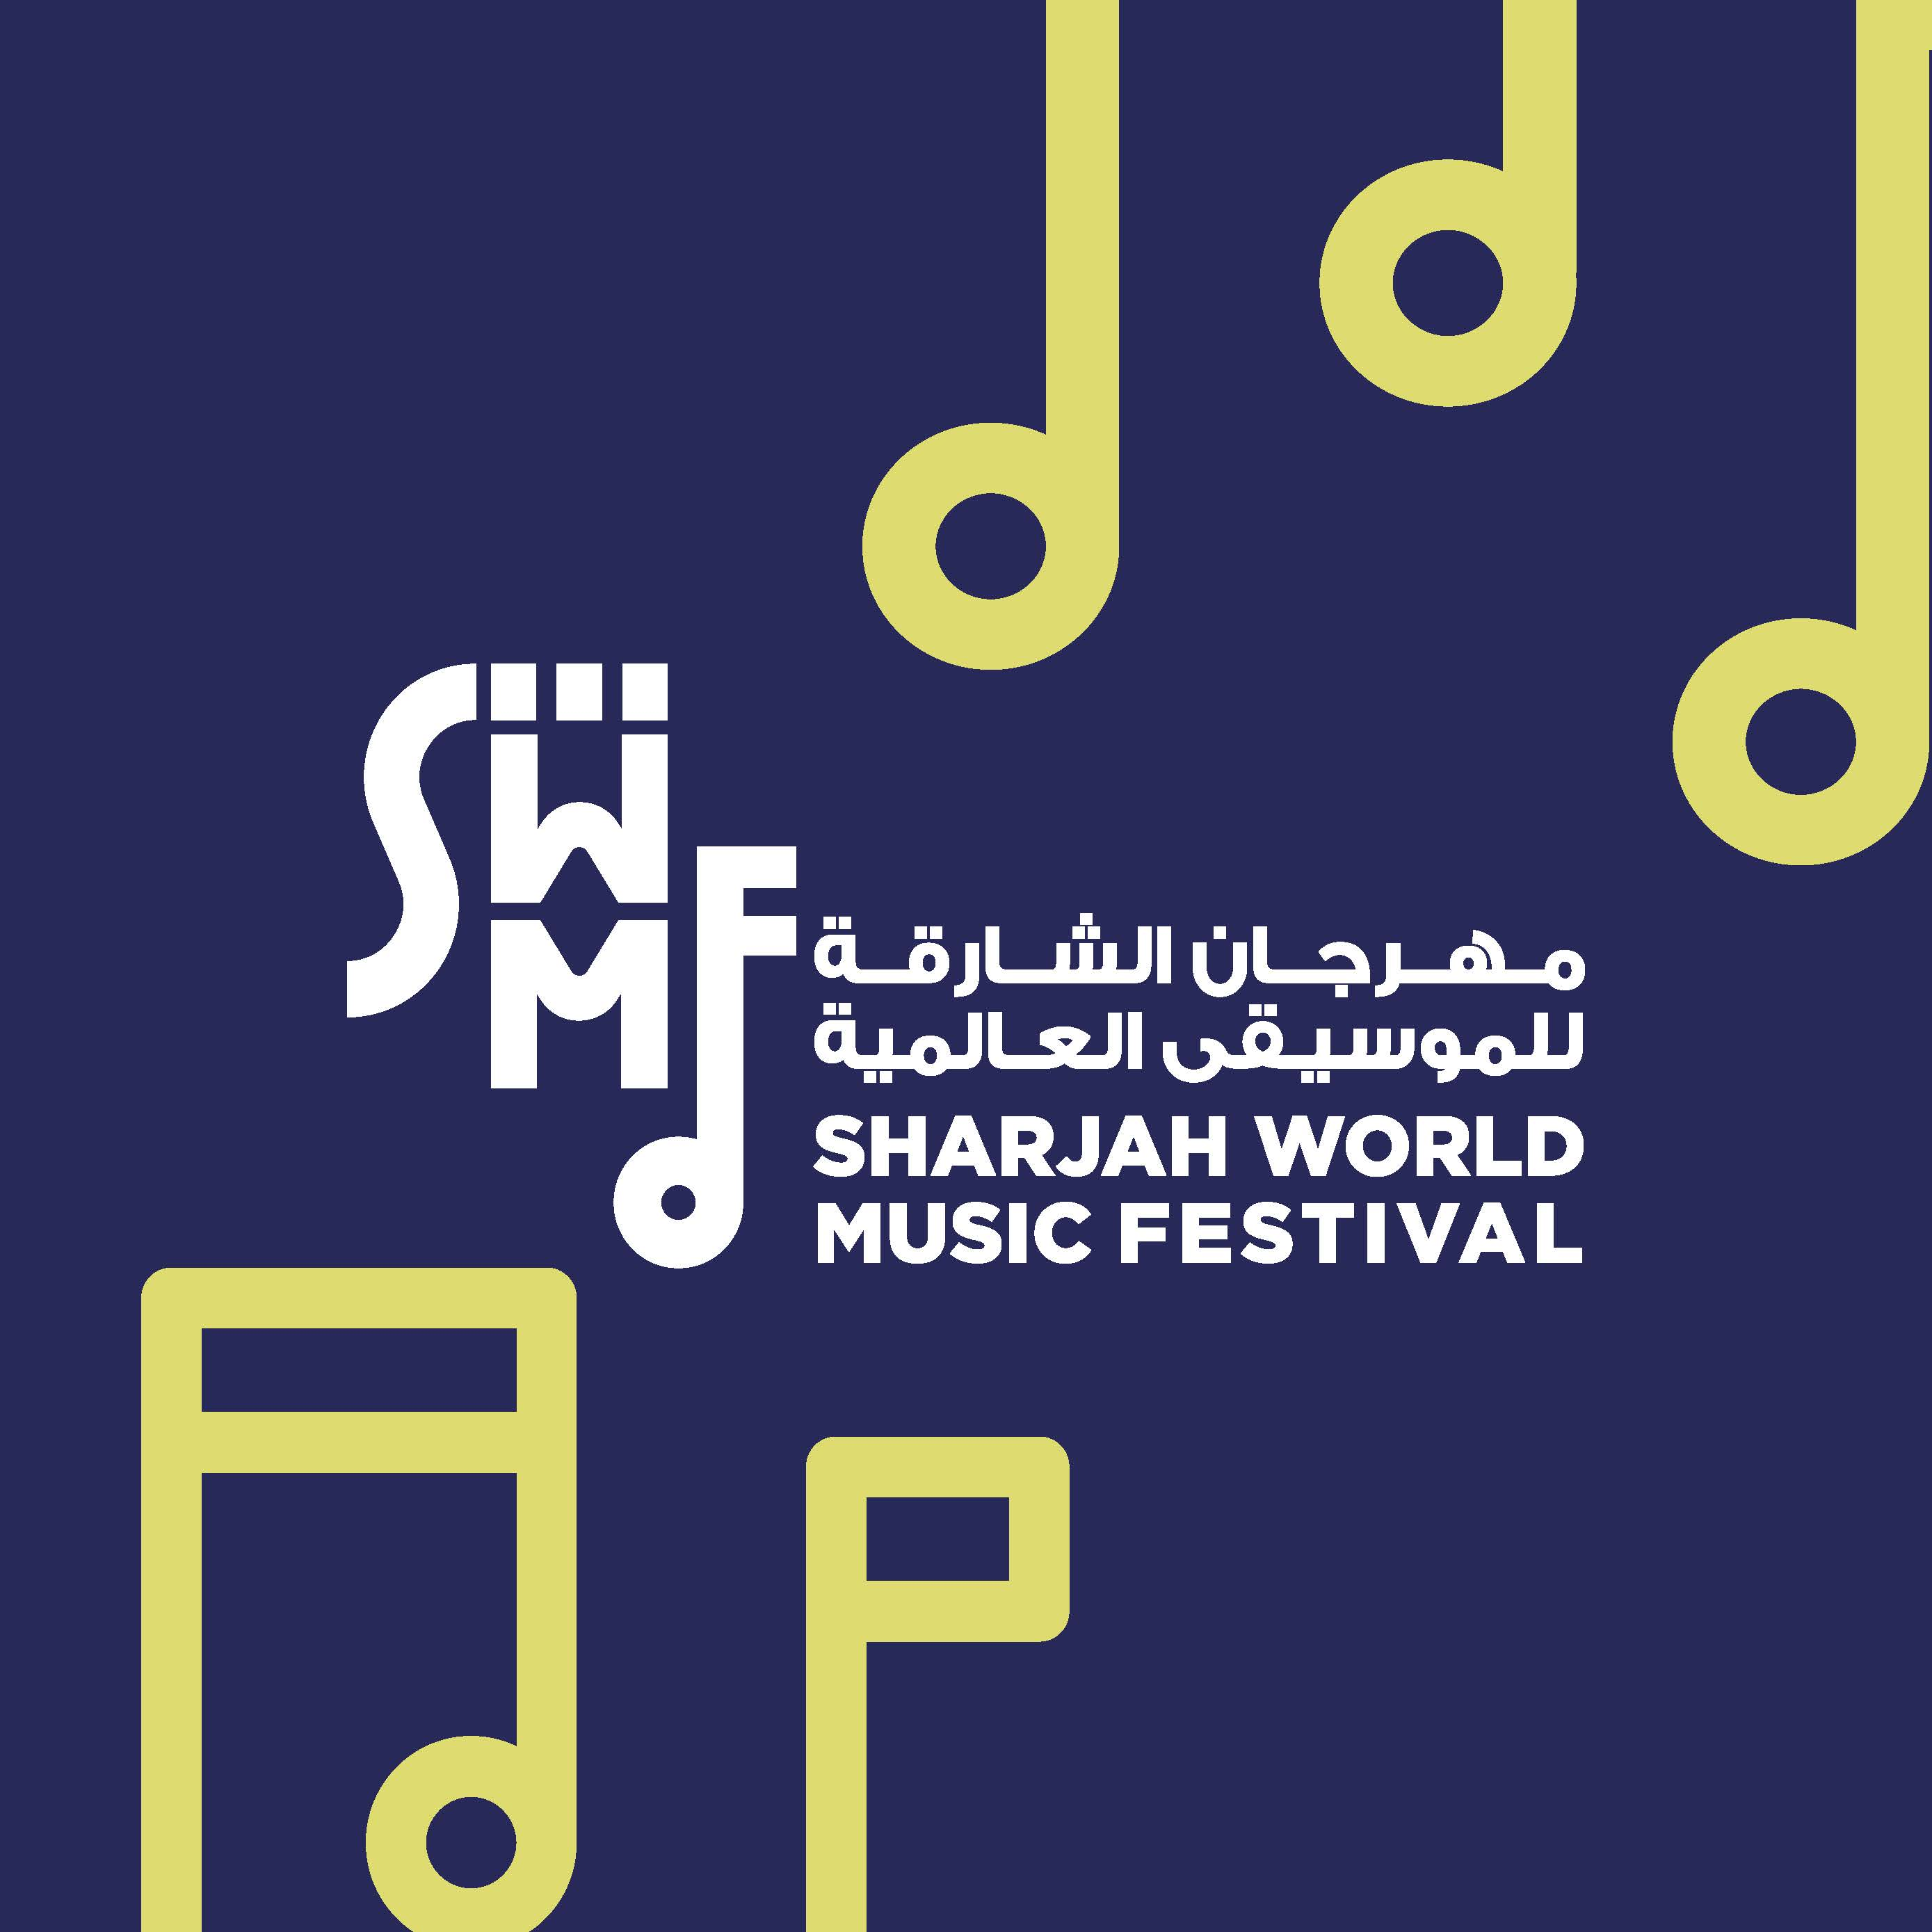 104-173059-sharjah-world-music-festival-abdel-halim-hafez-3